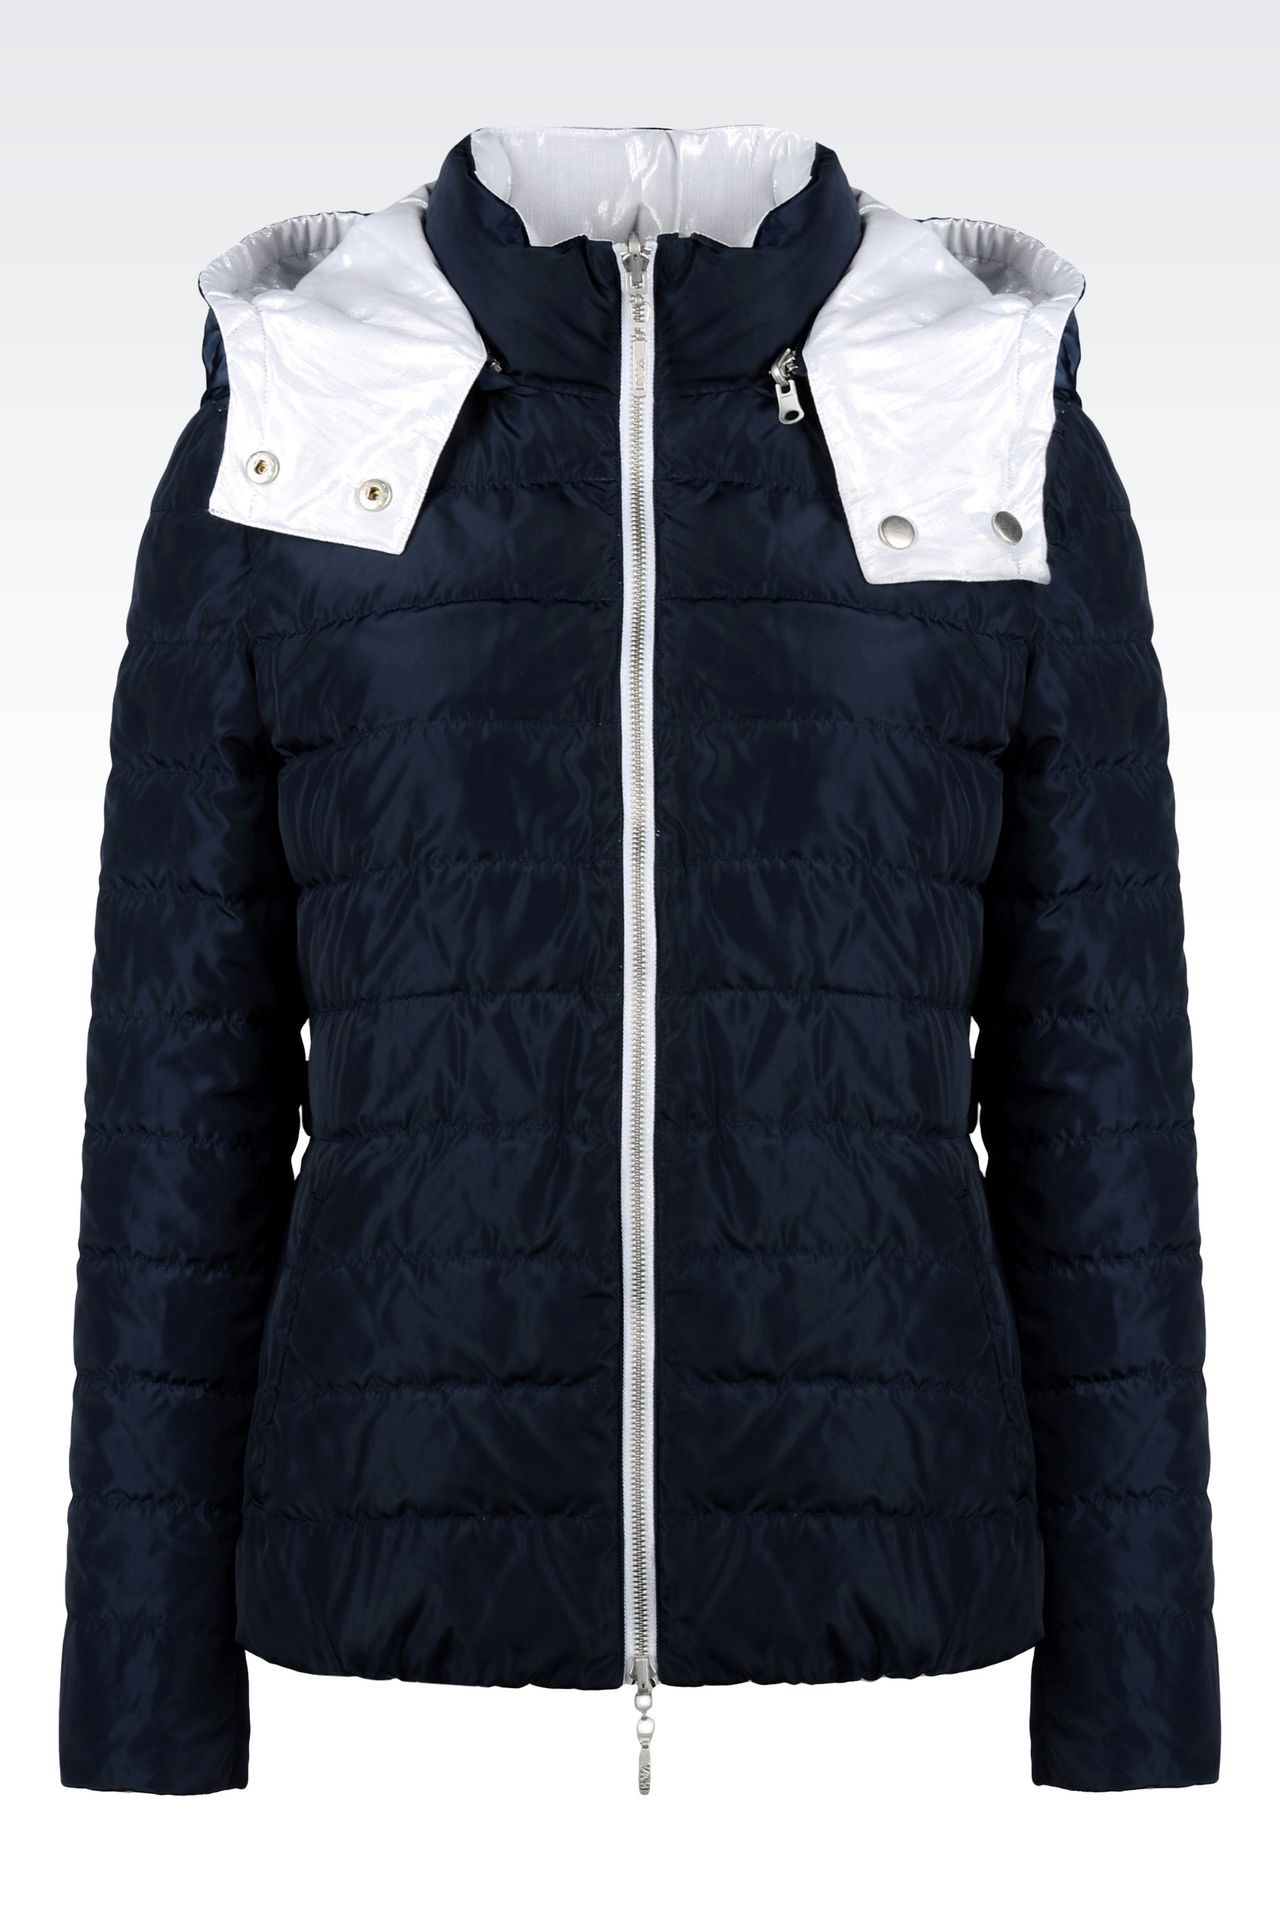 4aefdb59b918 Emporio Armani Women Down Coat - REVERSIBLE HOODED DOWN JACKET Emporio  Armani Official Online Store